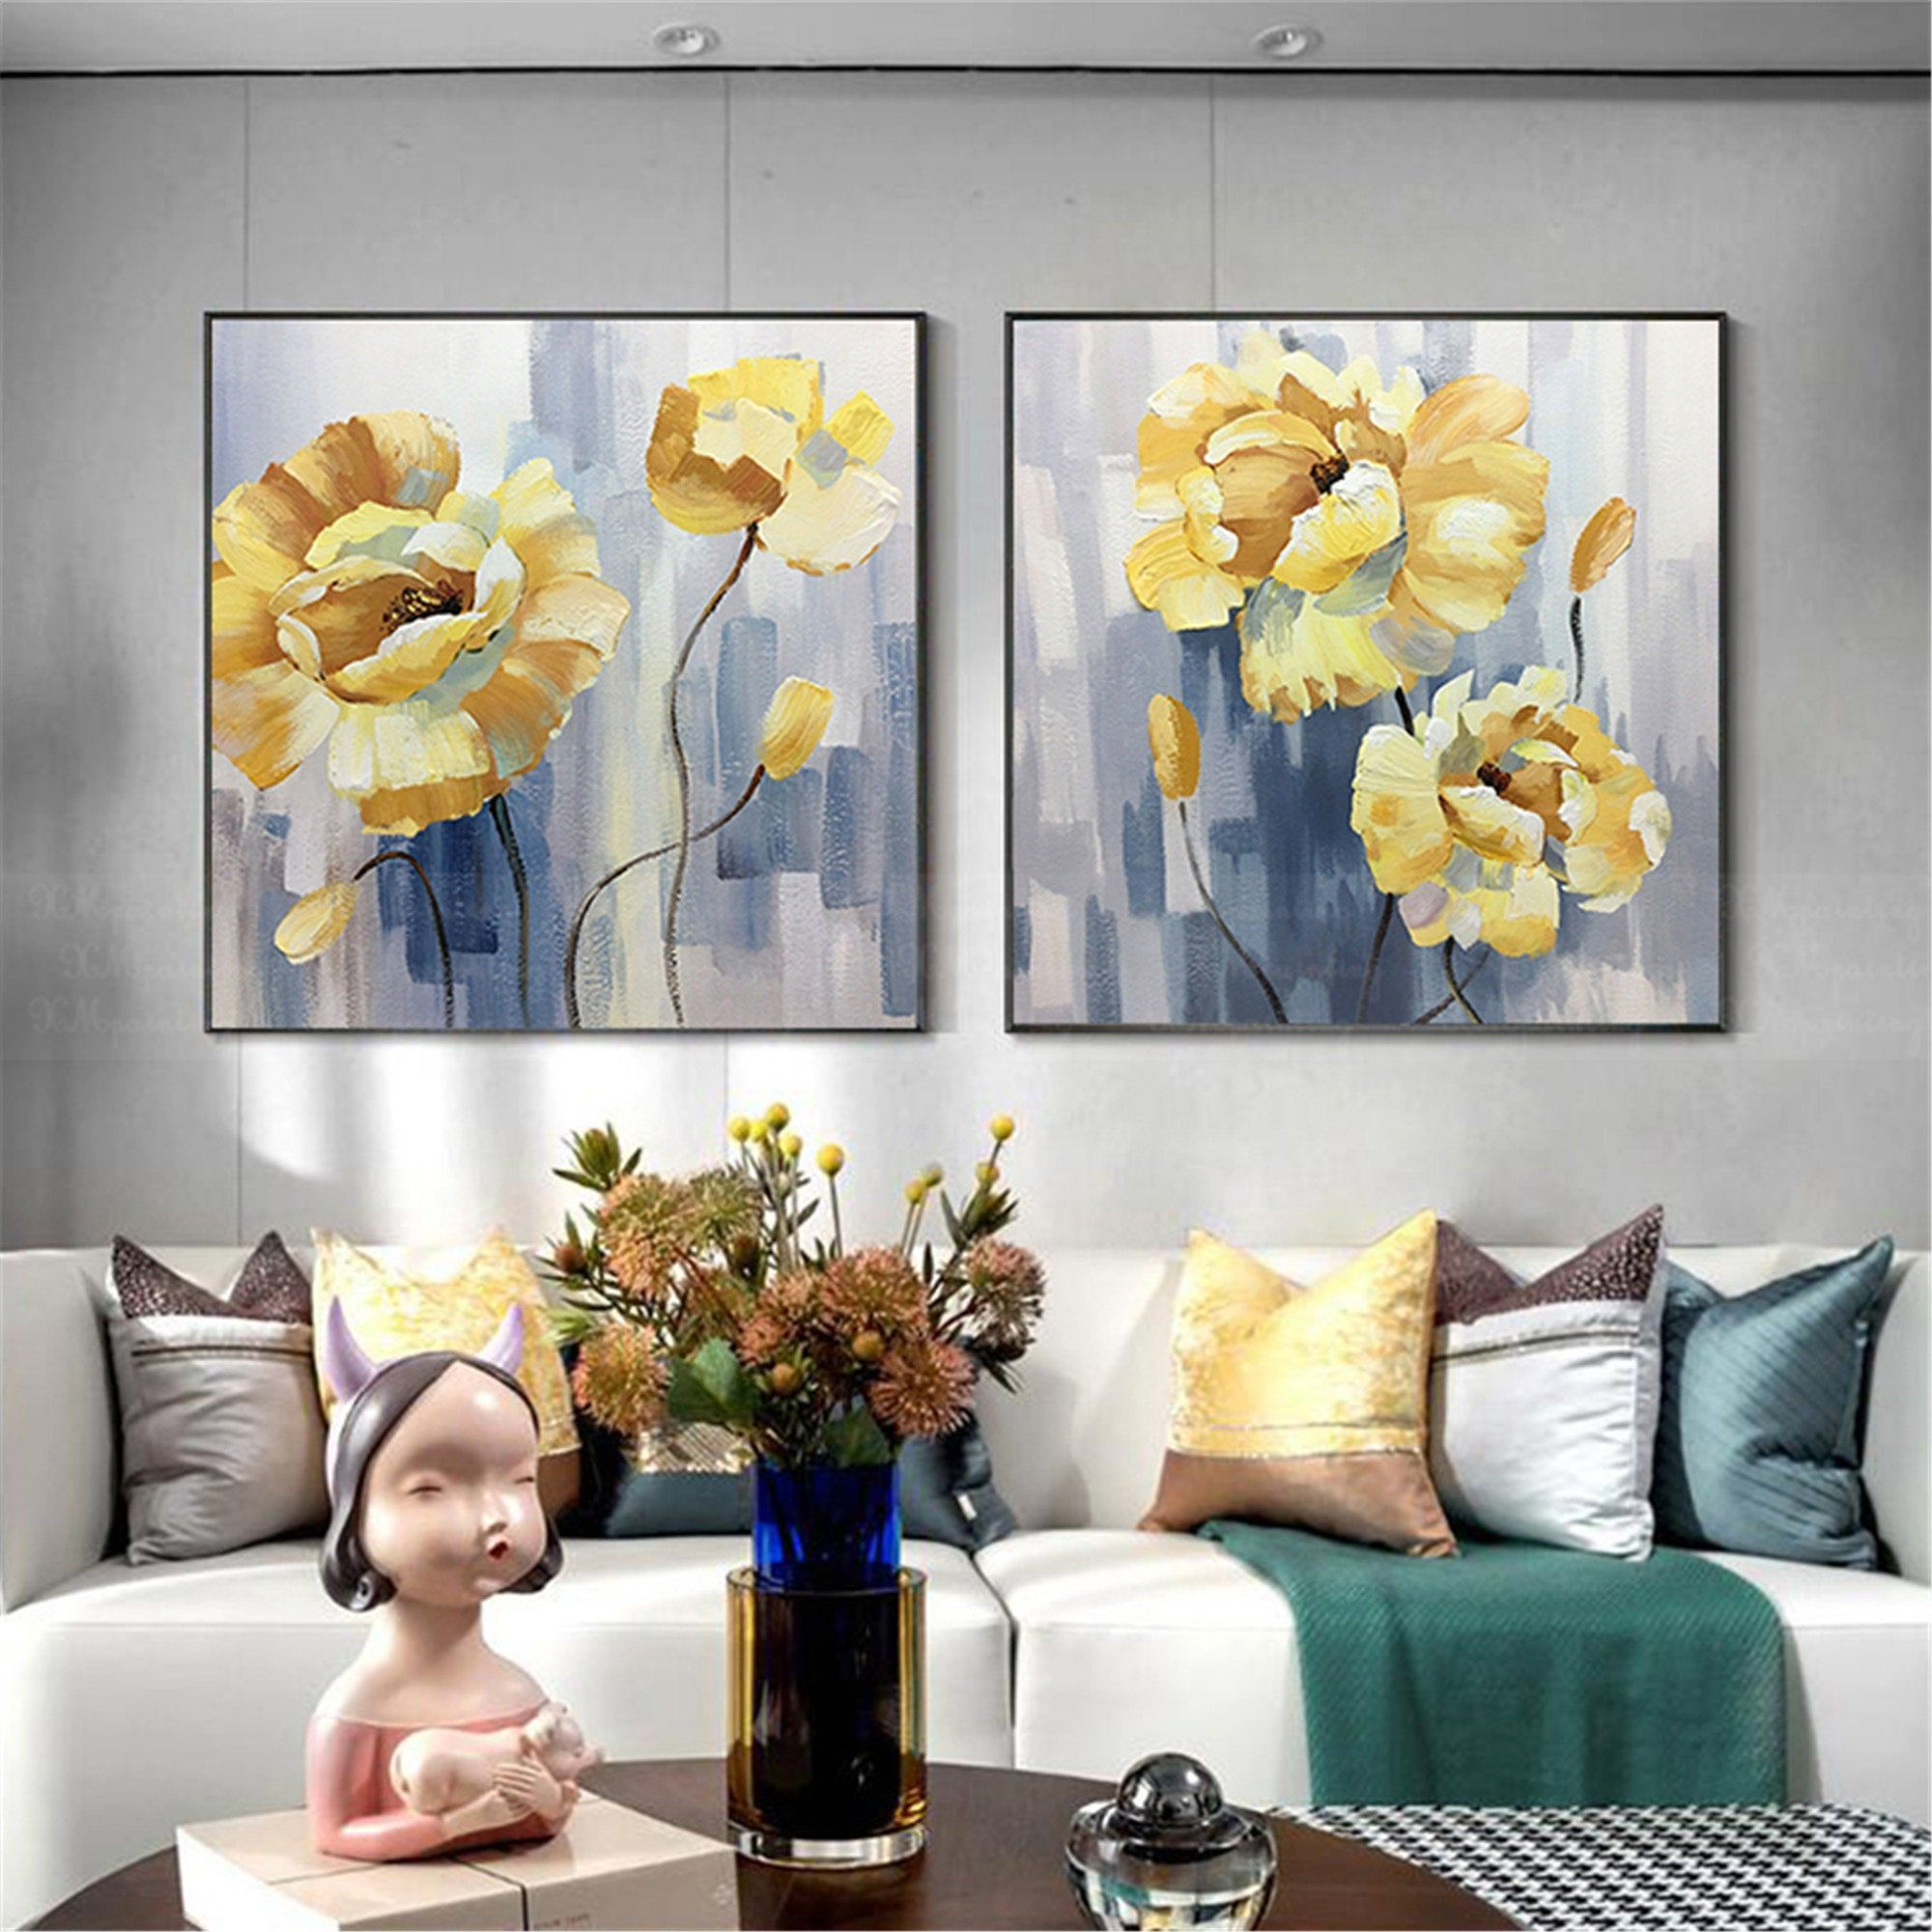 2 Pieces Gold Acrylic Flower Abstract Painting Canvas Wall Art Etsy Abstract Canvas Painting Etsy Wall Art Abstract Art Decor